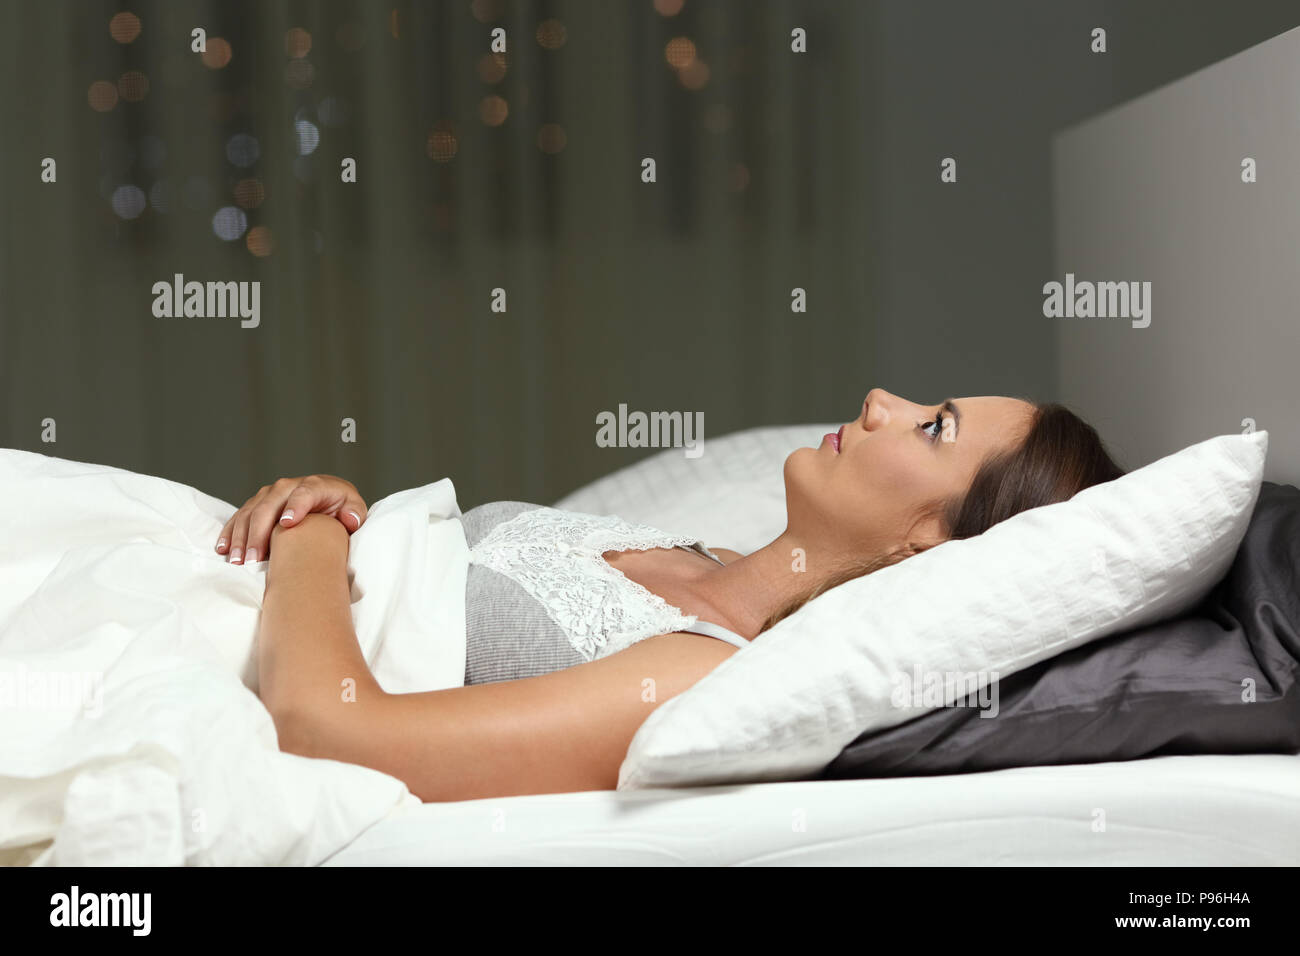 Side view portrait of a insomniac girl unable to sleep in the night on a bed - Stock Image